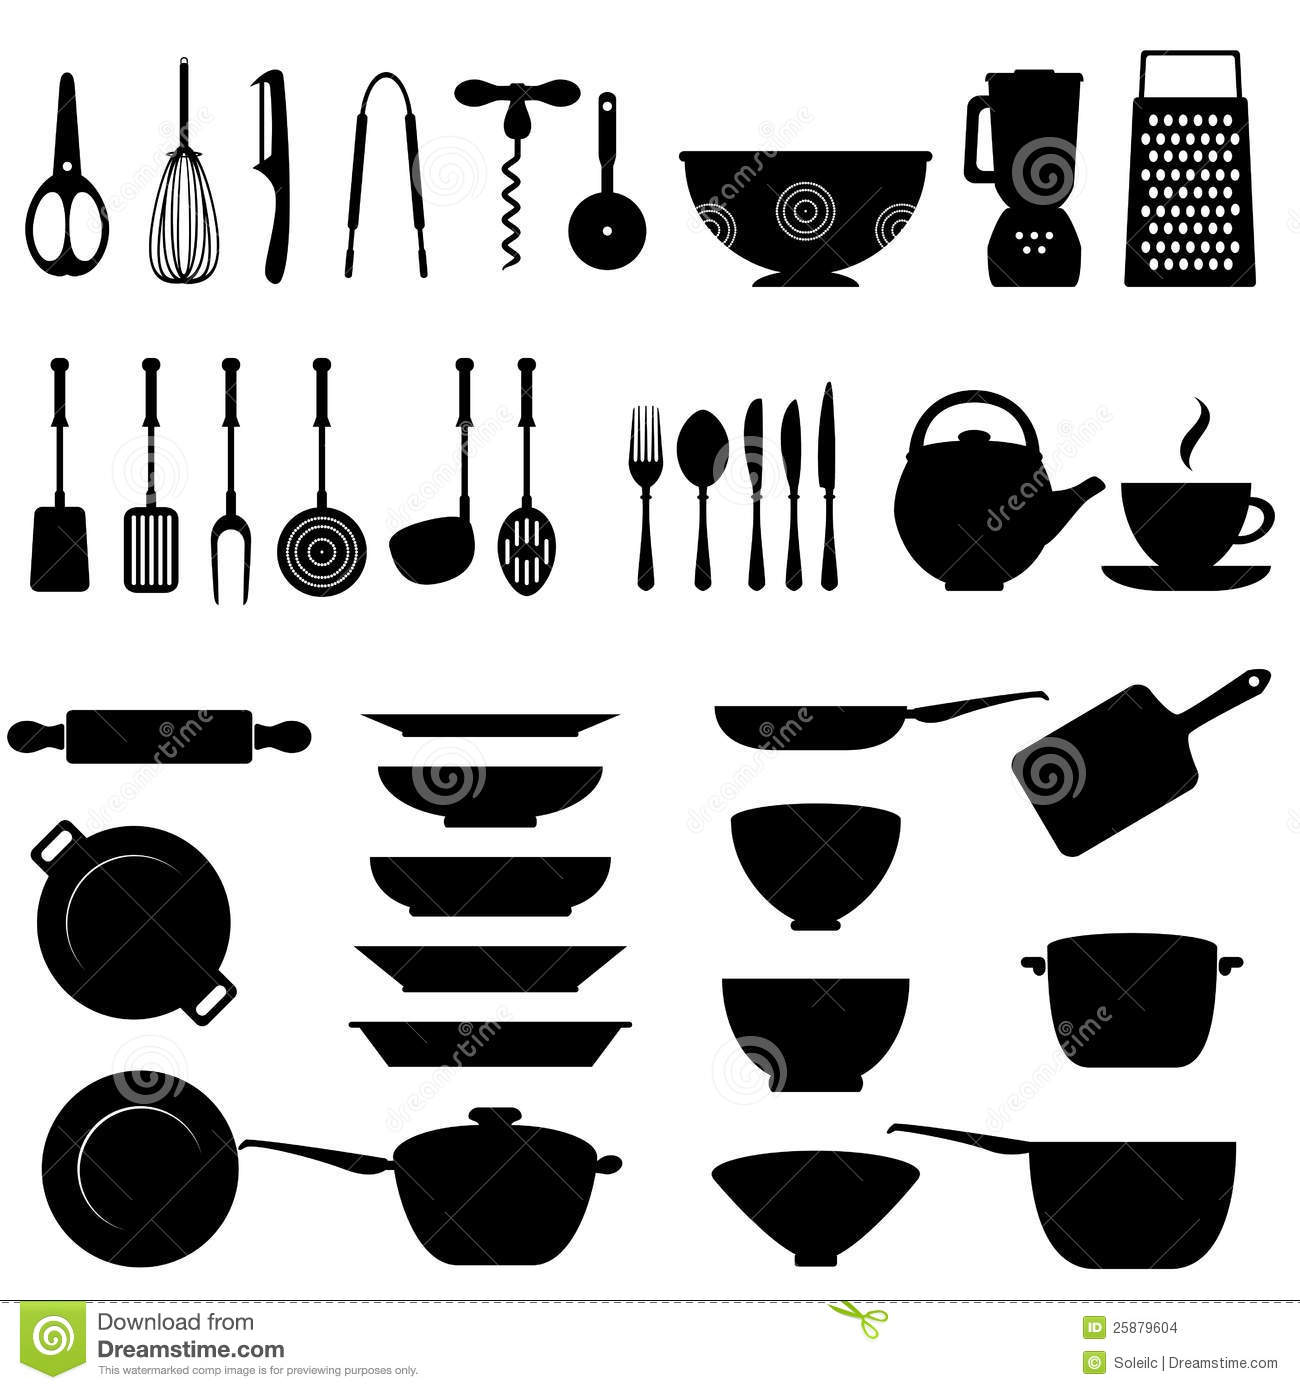 kitchen utensil icon set stock vector illustration of. Black Bedroom Furniture Sets. Home Design Ideas